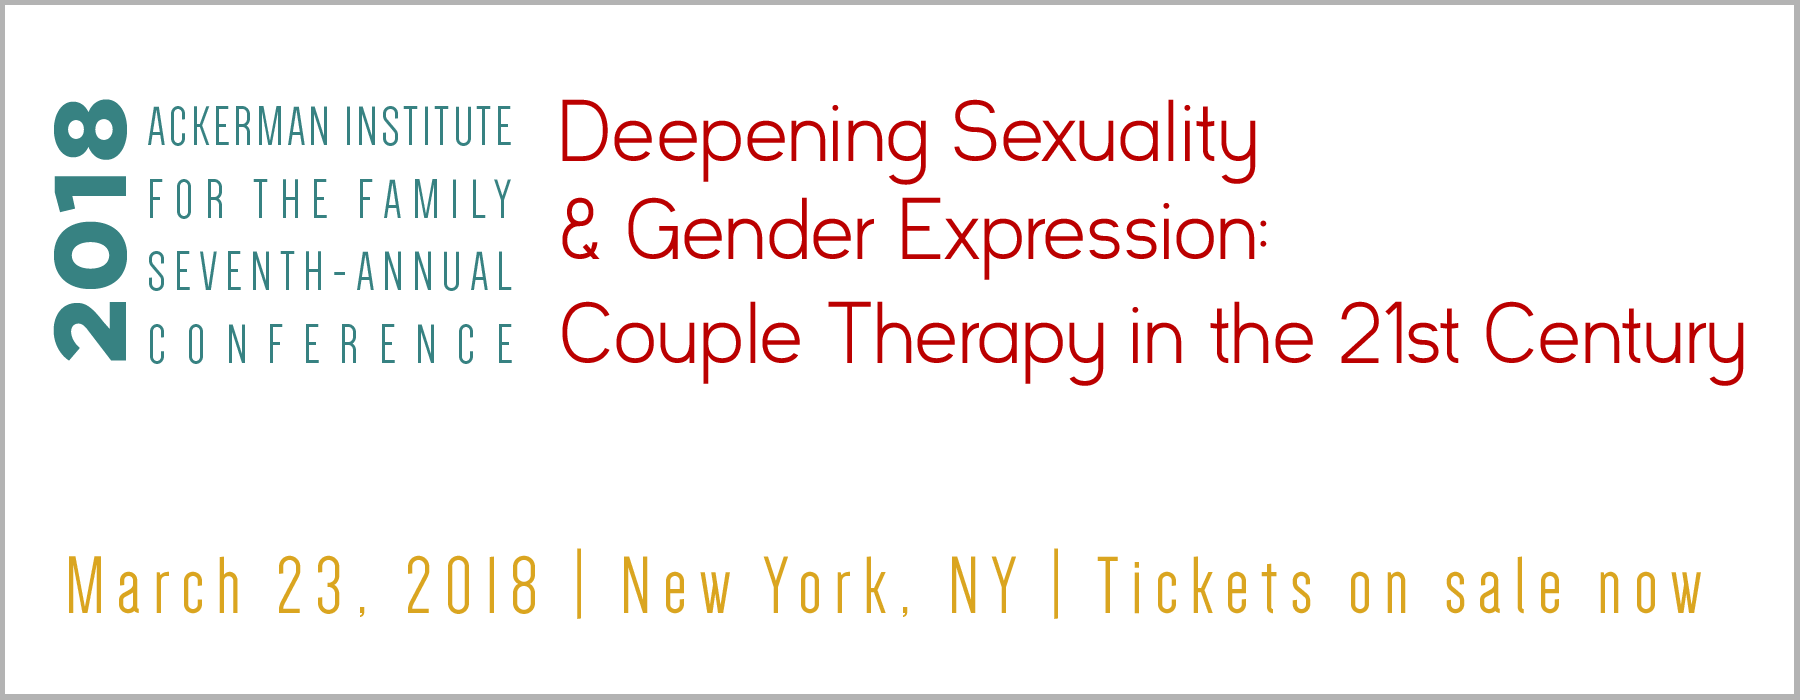 Deepening Sexuality and Gender Expression: Couple Therapy in the 21st Century Ackerman's Seventh Annual Spring Conference